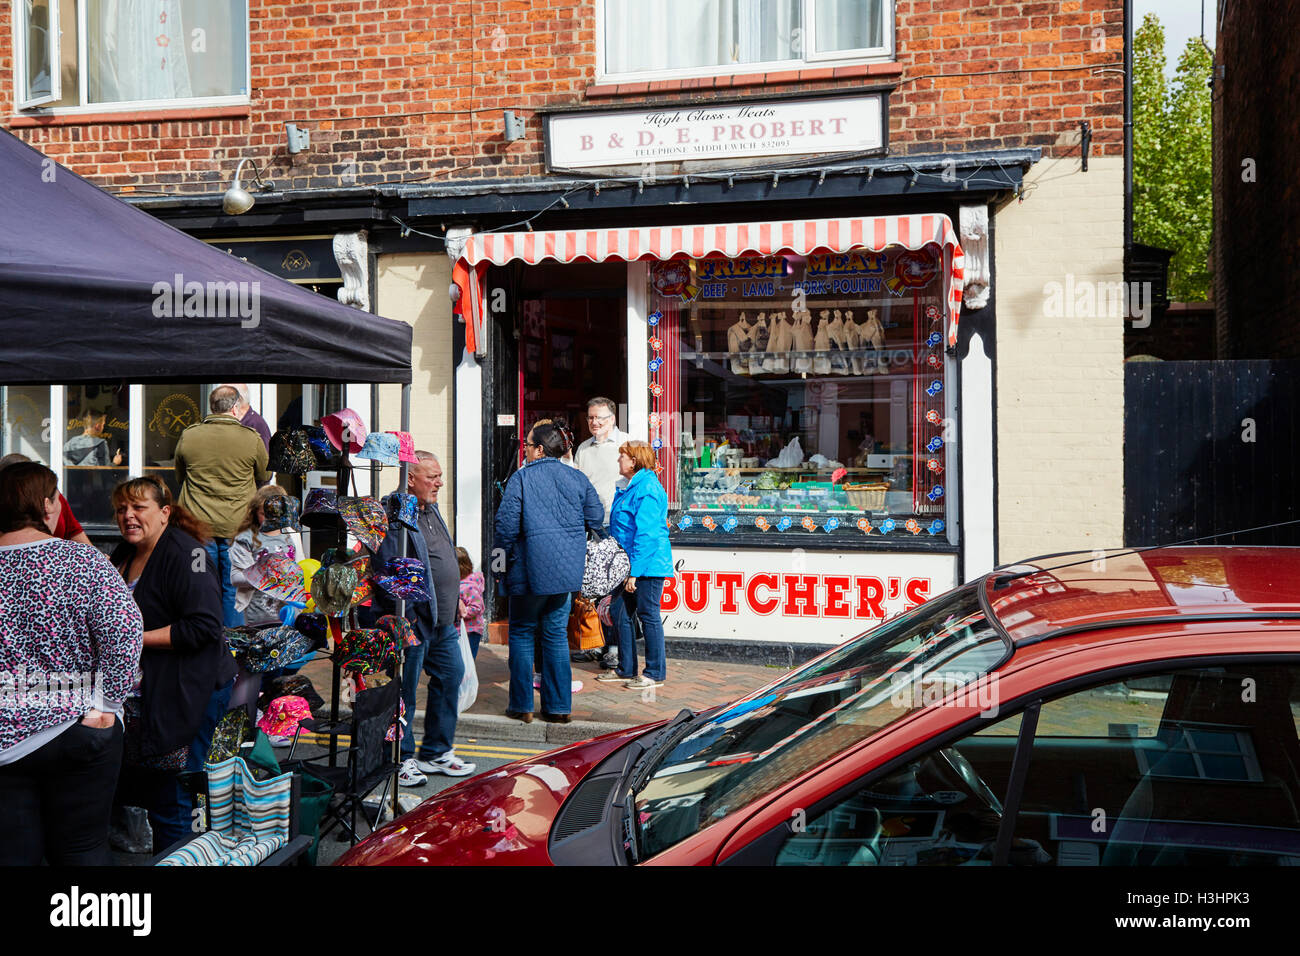 B & D E Probert high class meats, Middlewich - Stock Image